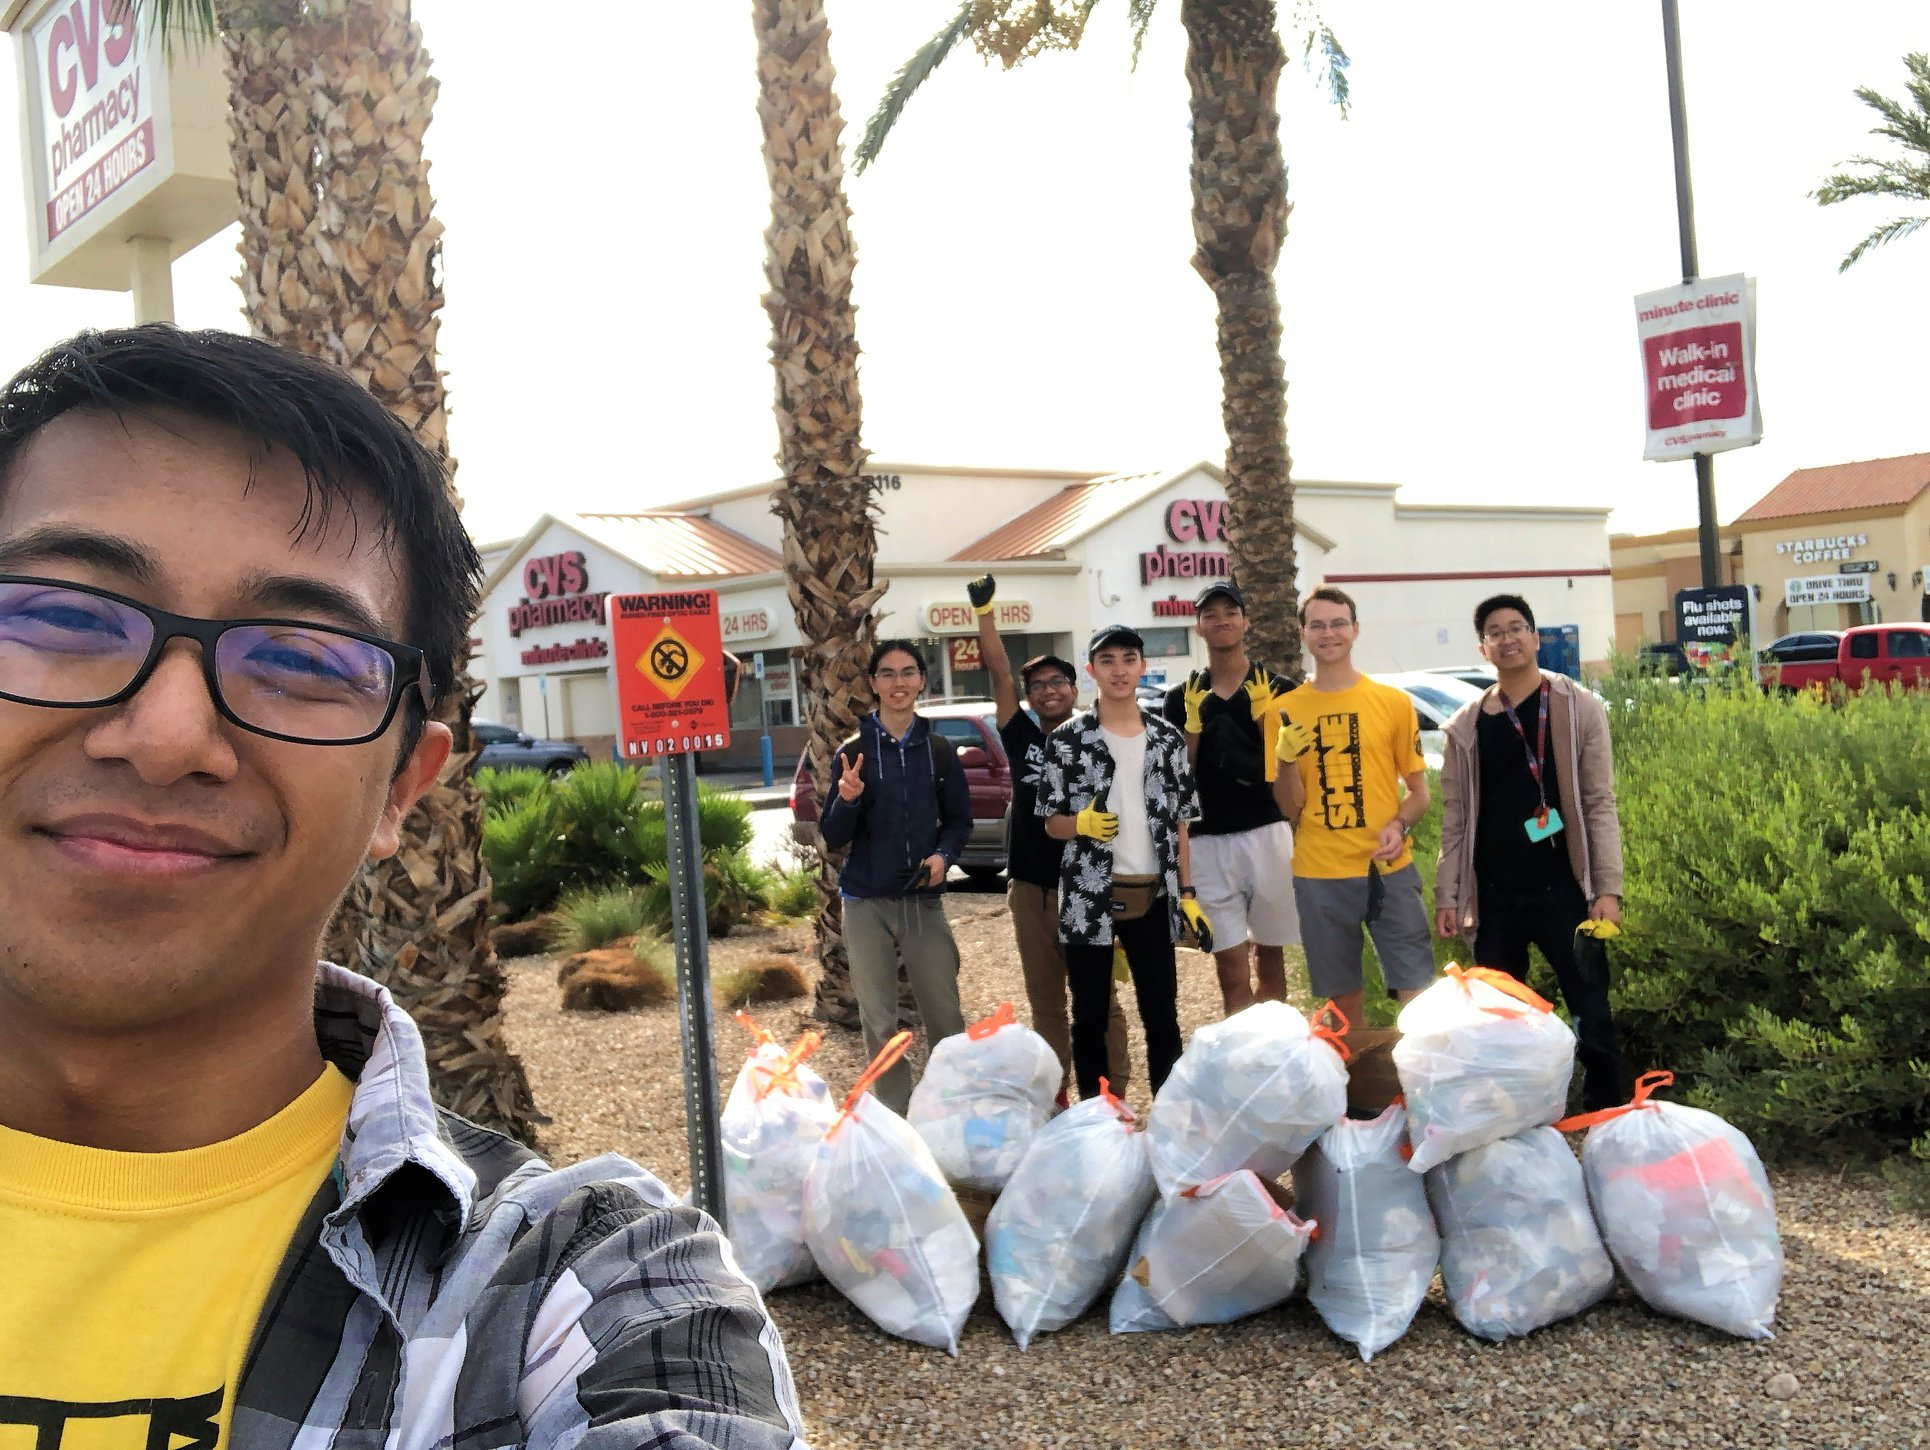 Taken October 6, 2018. After months of being inactive, Shine City Project clean-ups were revived with a service project near a local CVS Pharmacy.